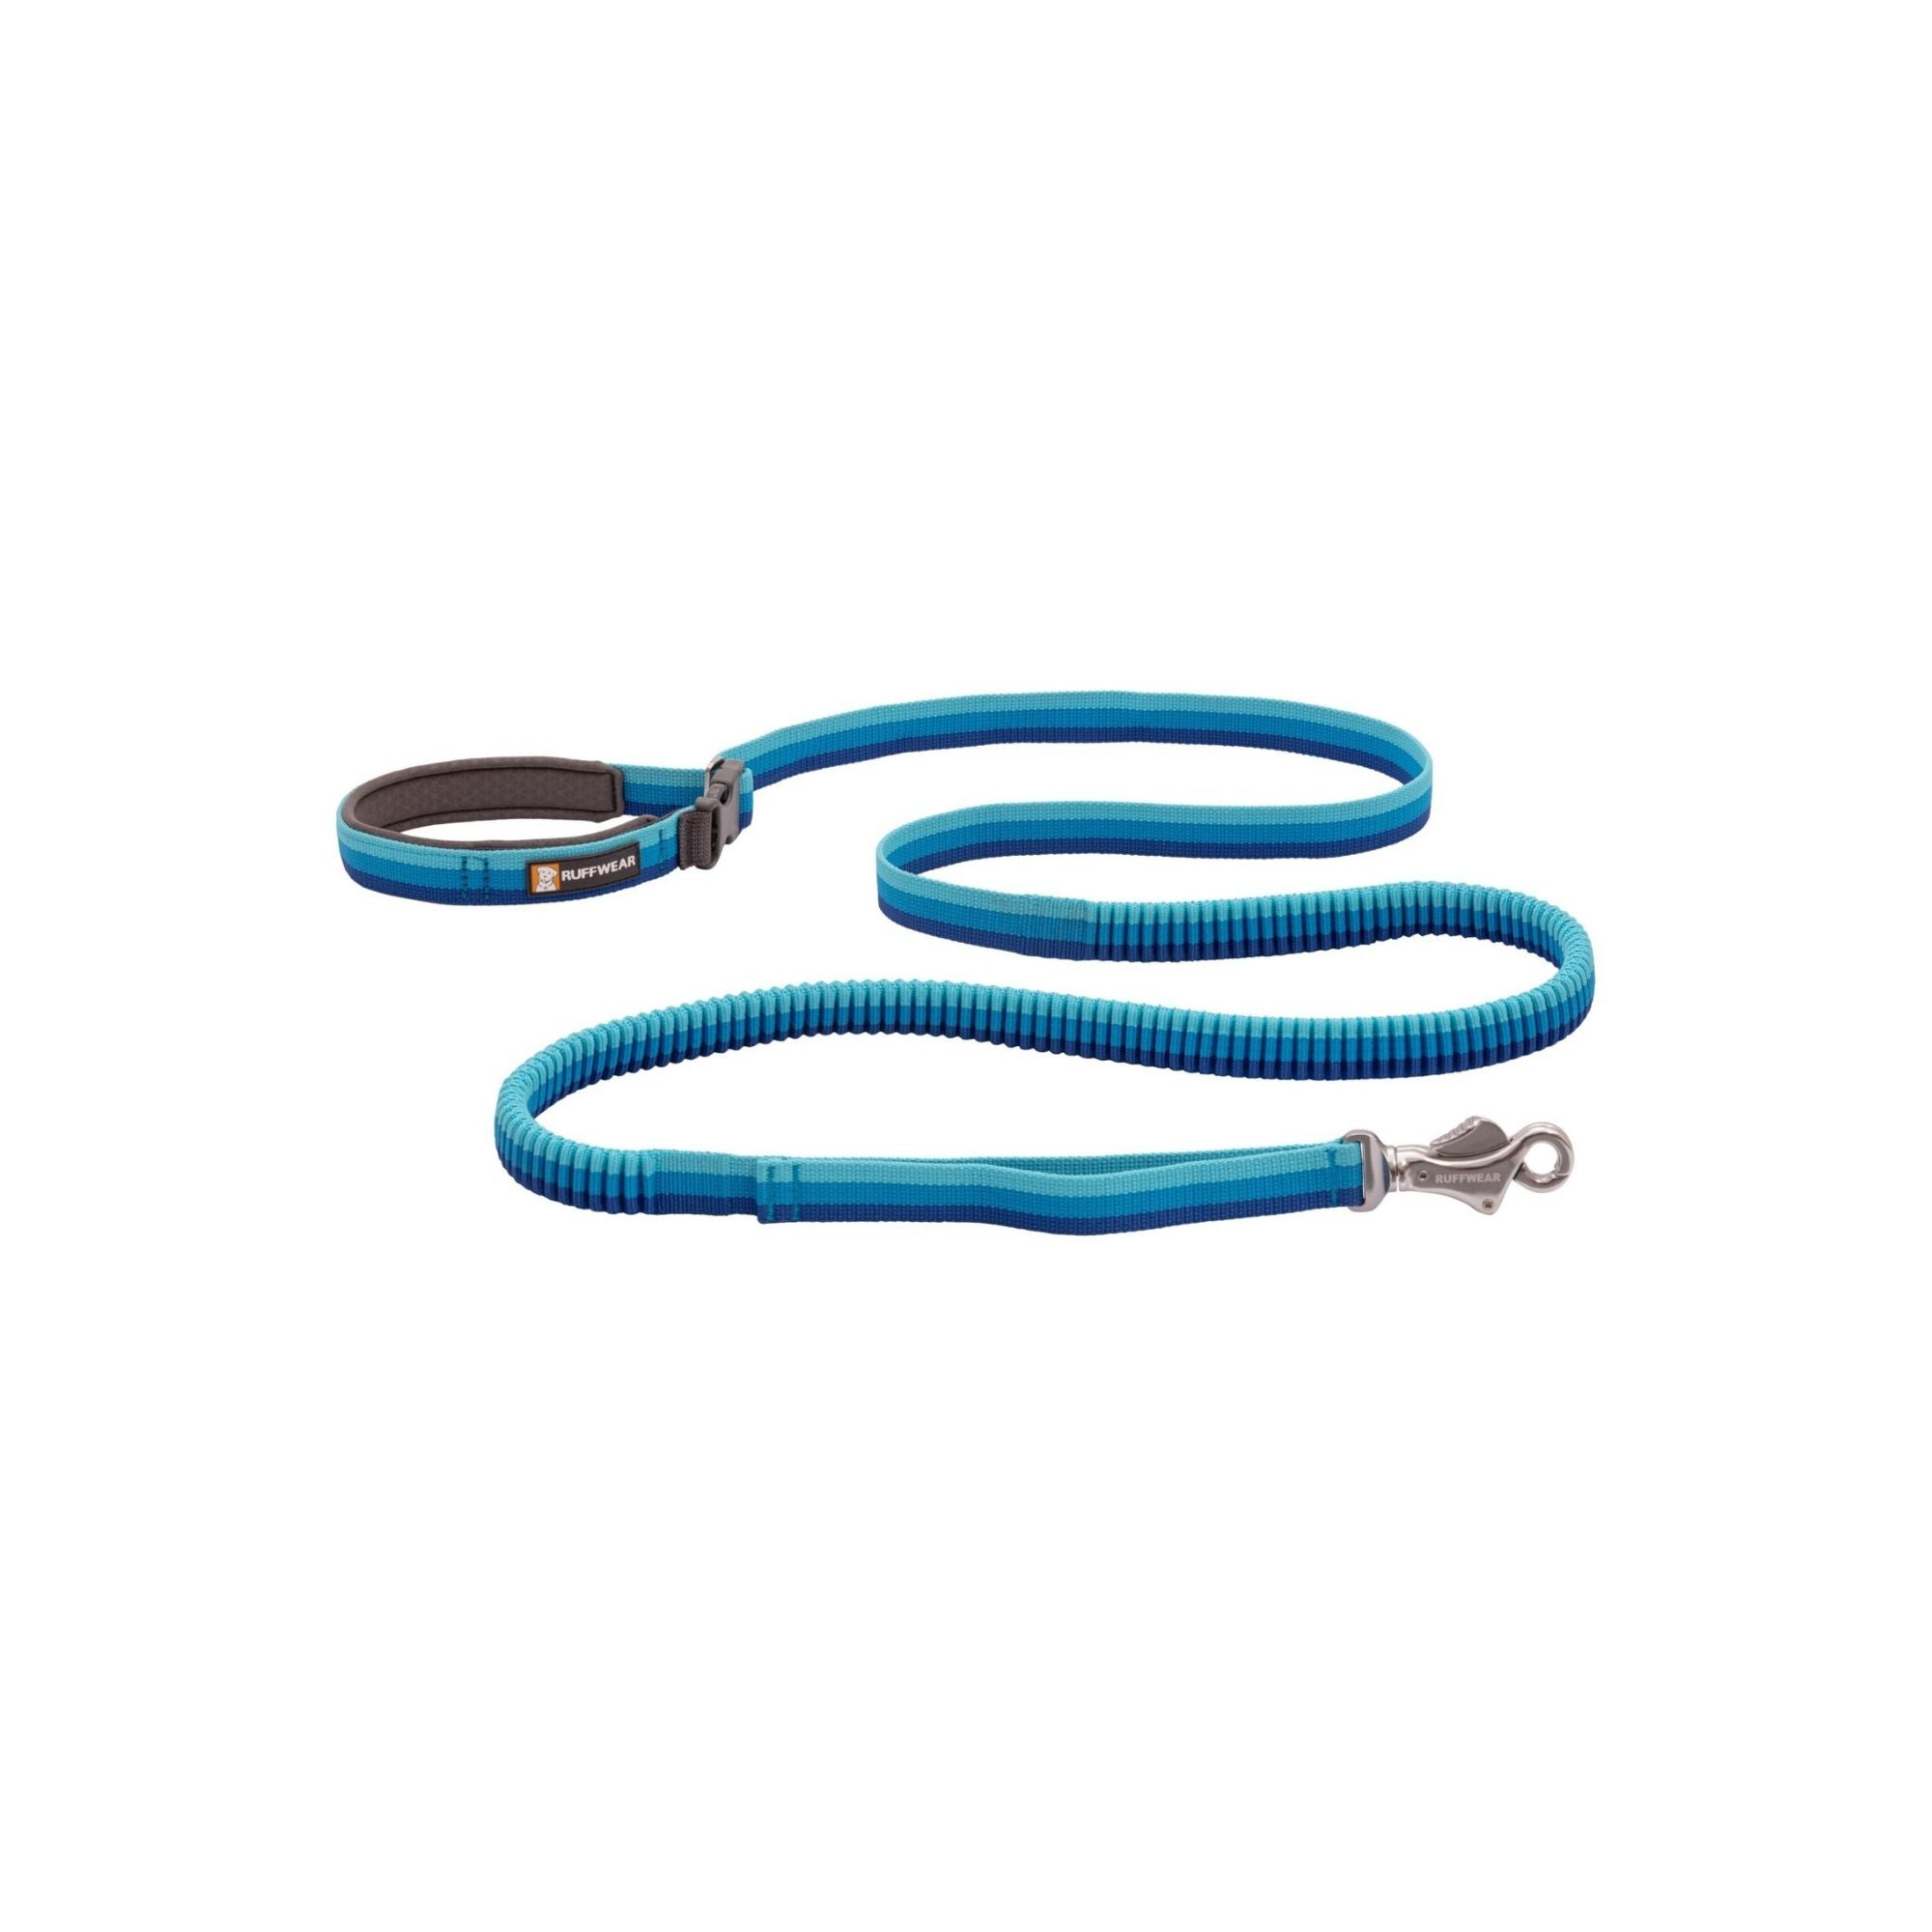 Ruffwear Roamer Lead UK, Bungee Dog Lead | Barks & Bunnies